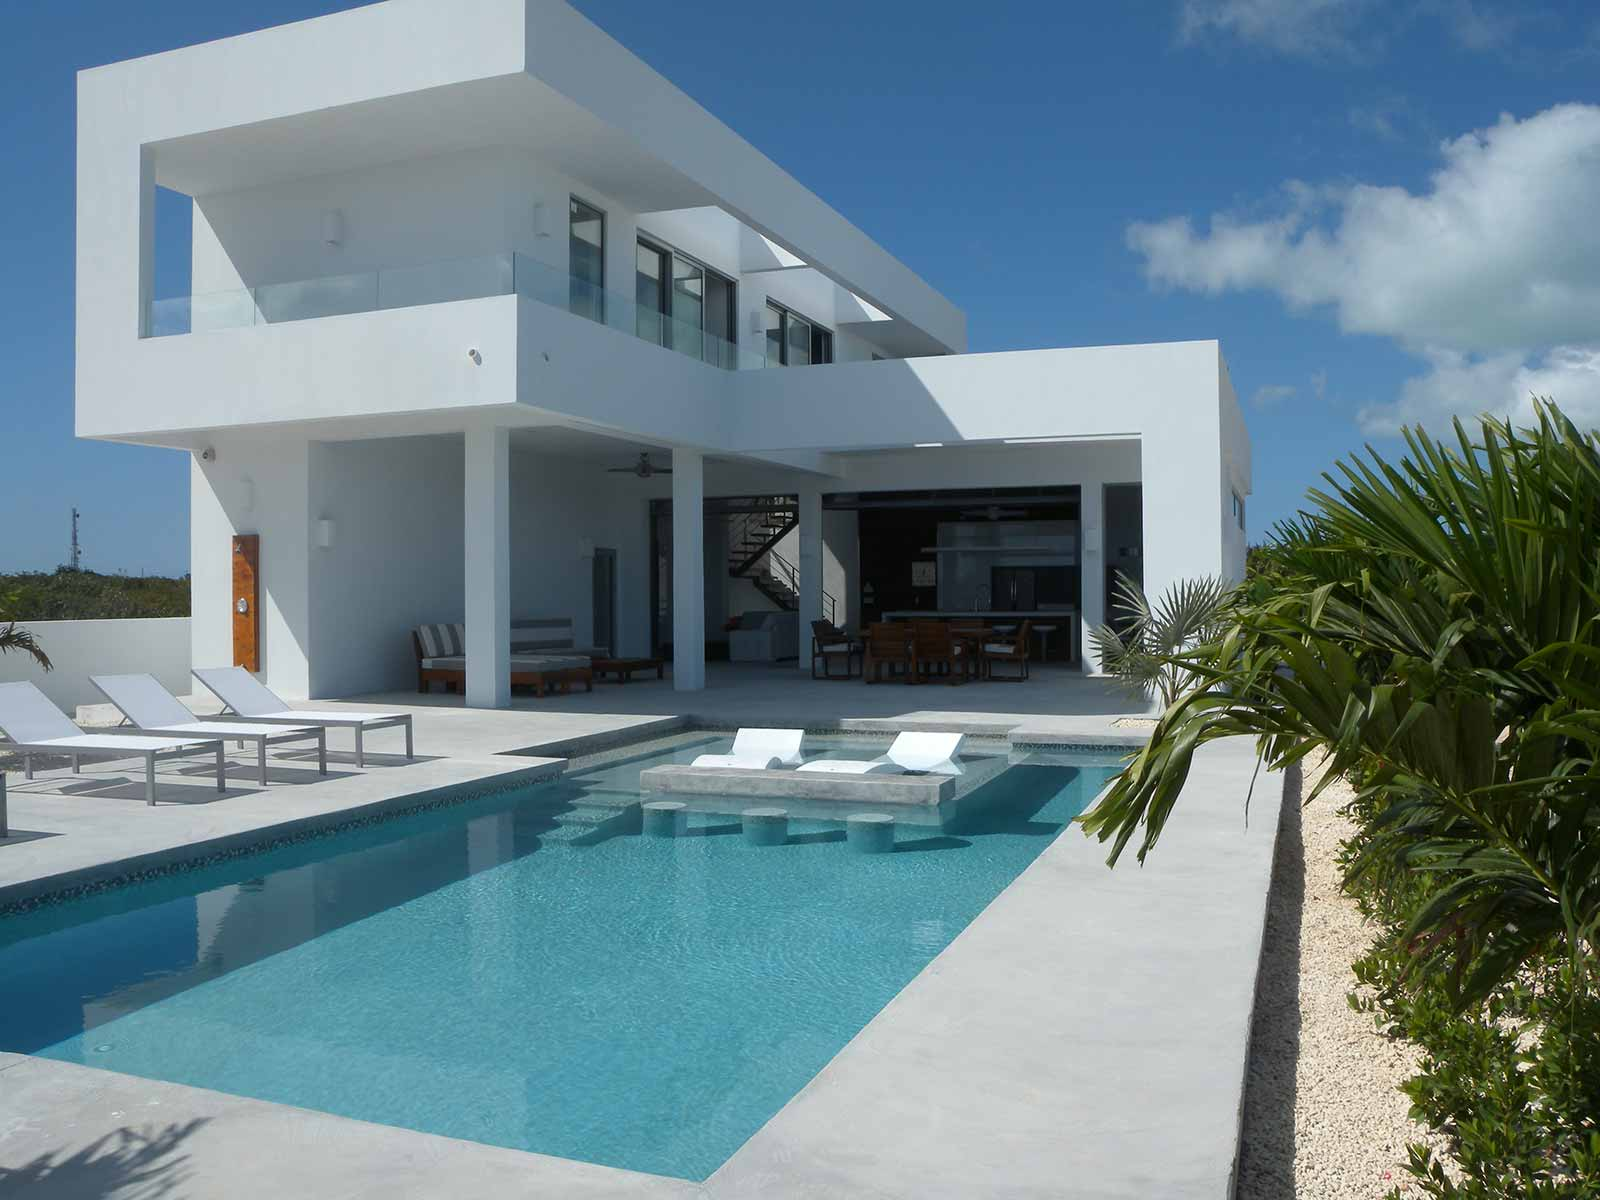 Villa rental in Turks and Caicos Island